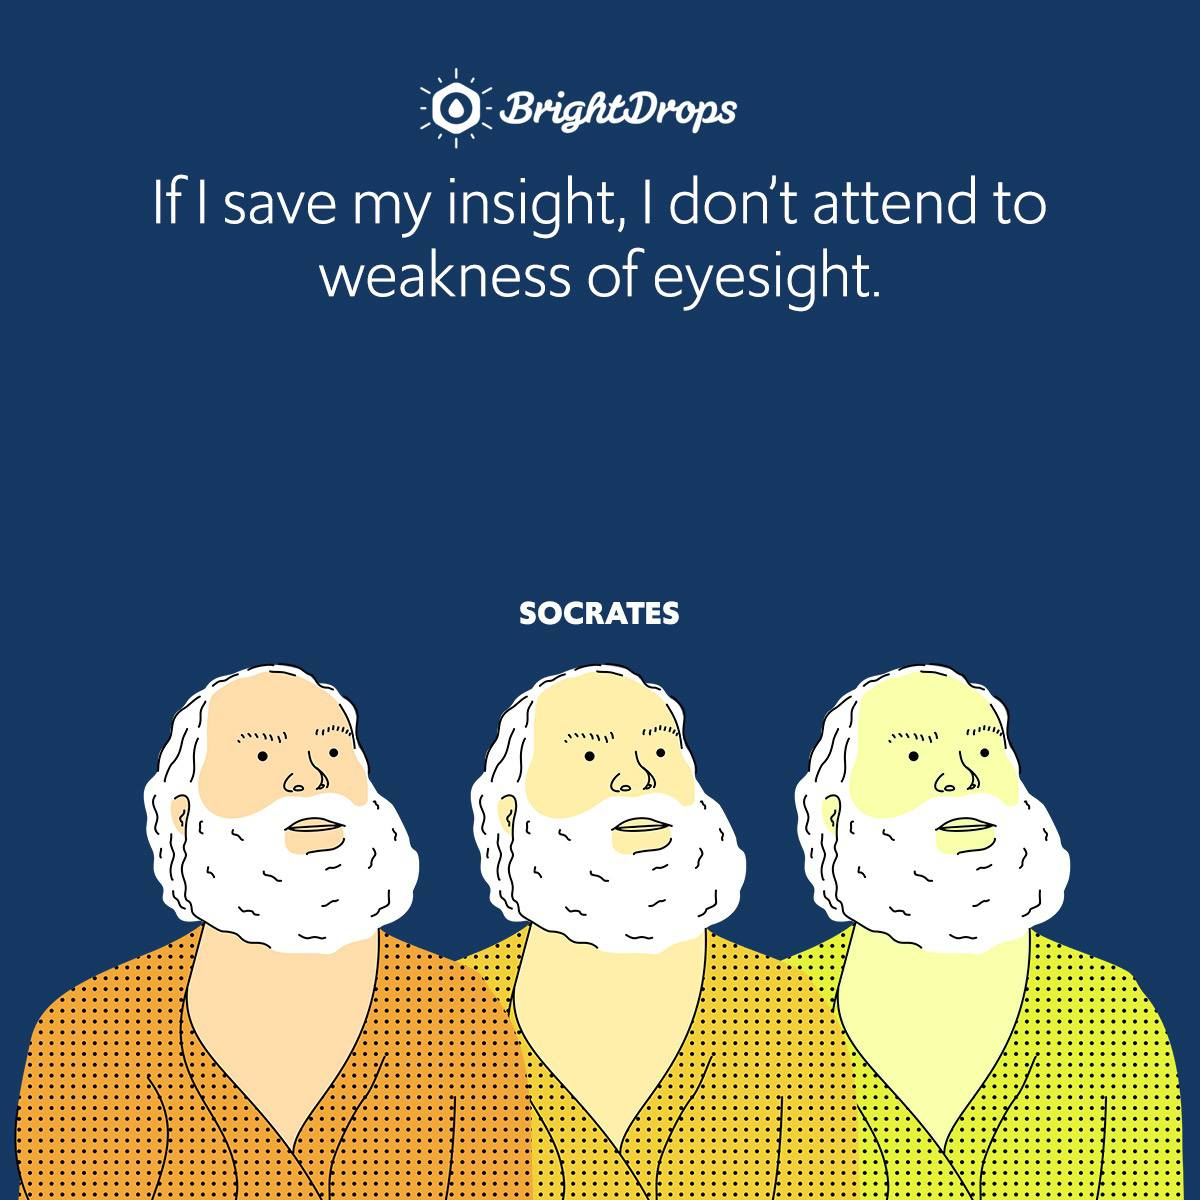 If I save my insight, I don't attend to weakness of eyesight.